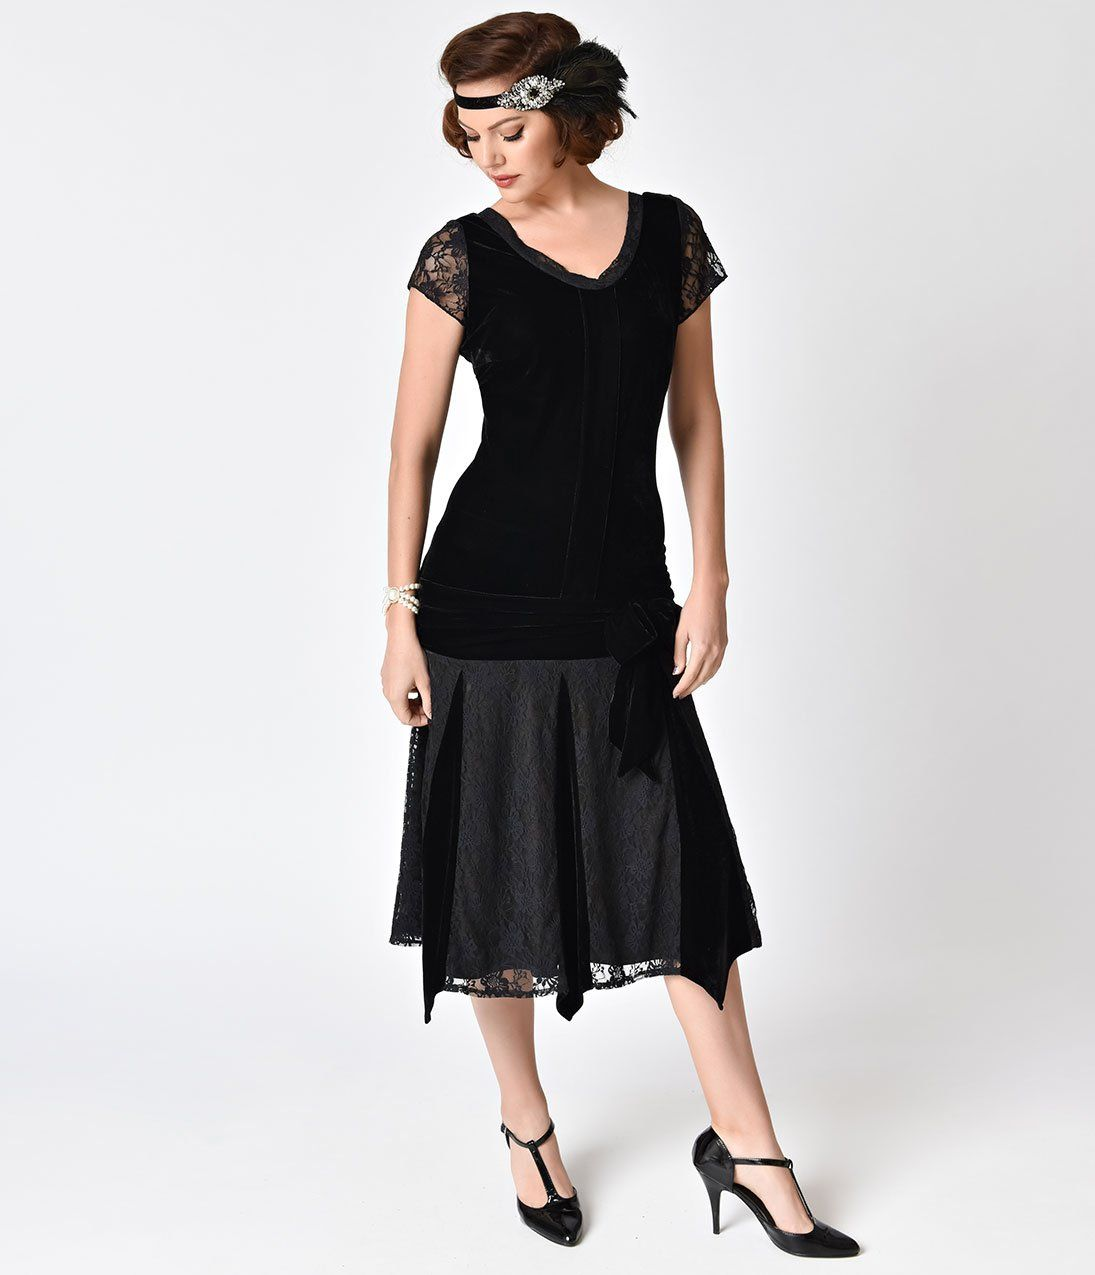 How to Dress Like a 1920\'s Flapper | Velvet shorts, 1920s style and ...